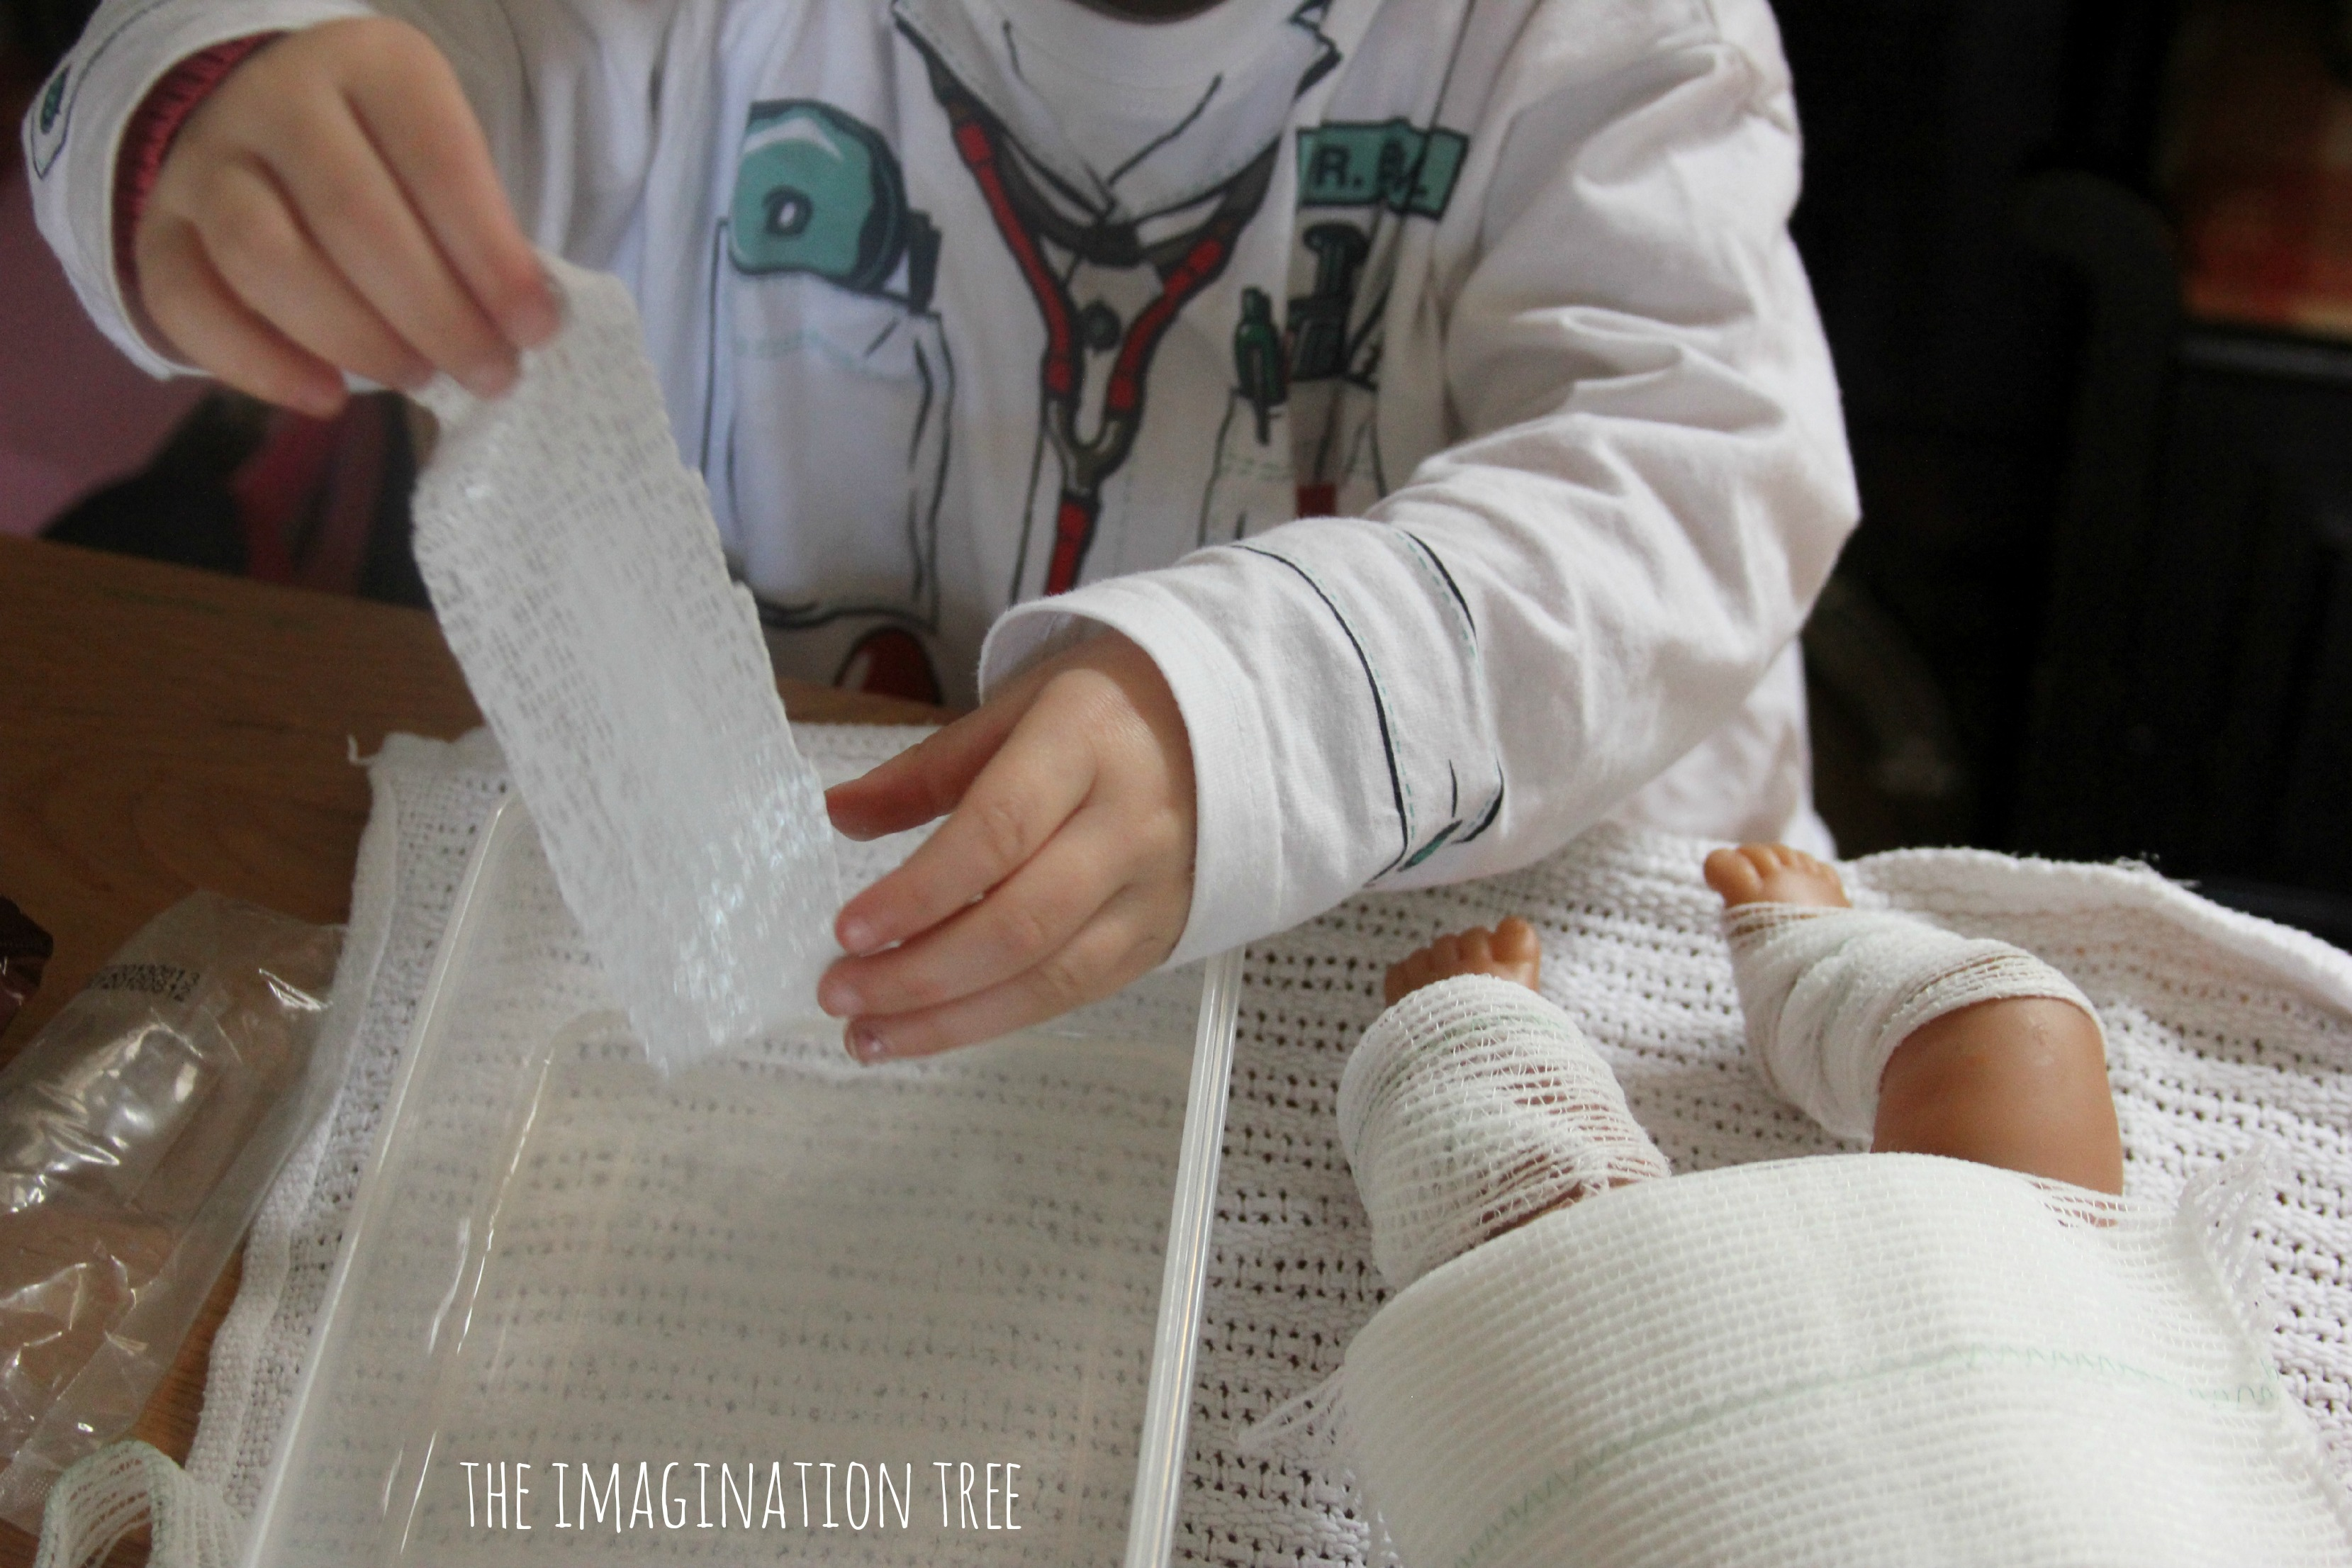 Diy plaster casts for doctor role play the imagination tree how to make diy pretend play plaster casts solutioingenieria Gallery